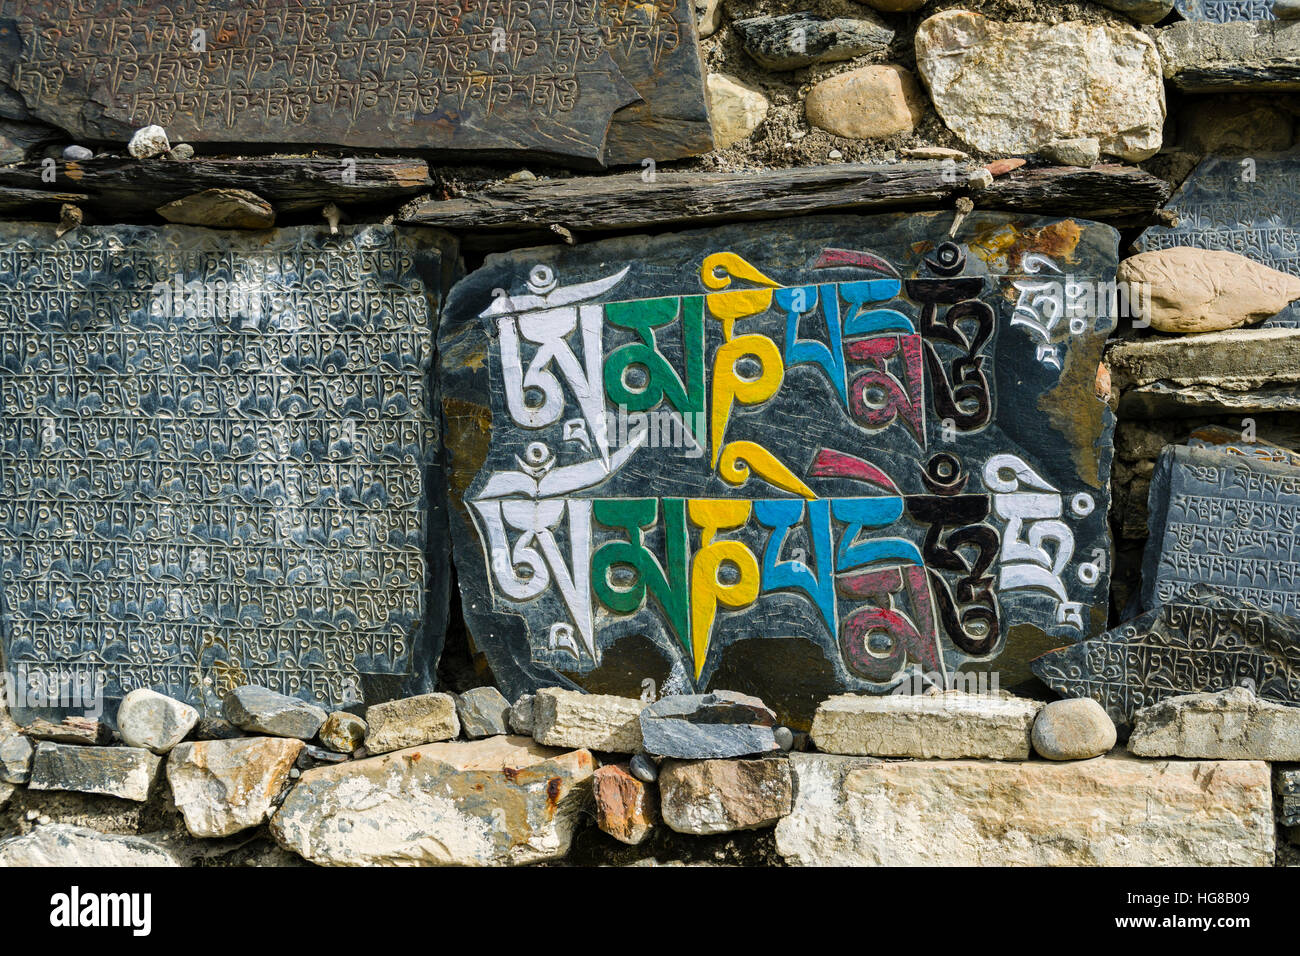 Mani stones with engraved colorful tibetan mantra at a wall, Manang, Manang District, Nepal - Stock Image